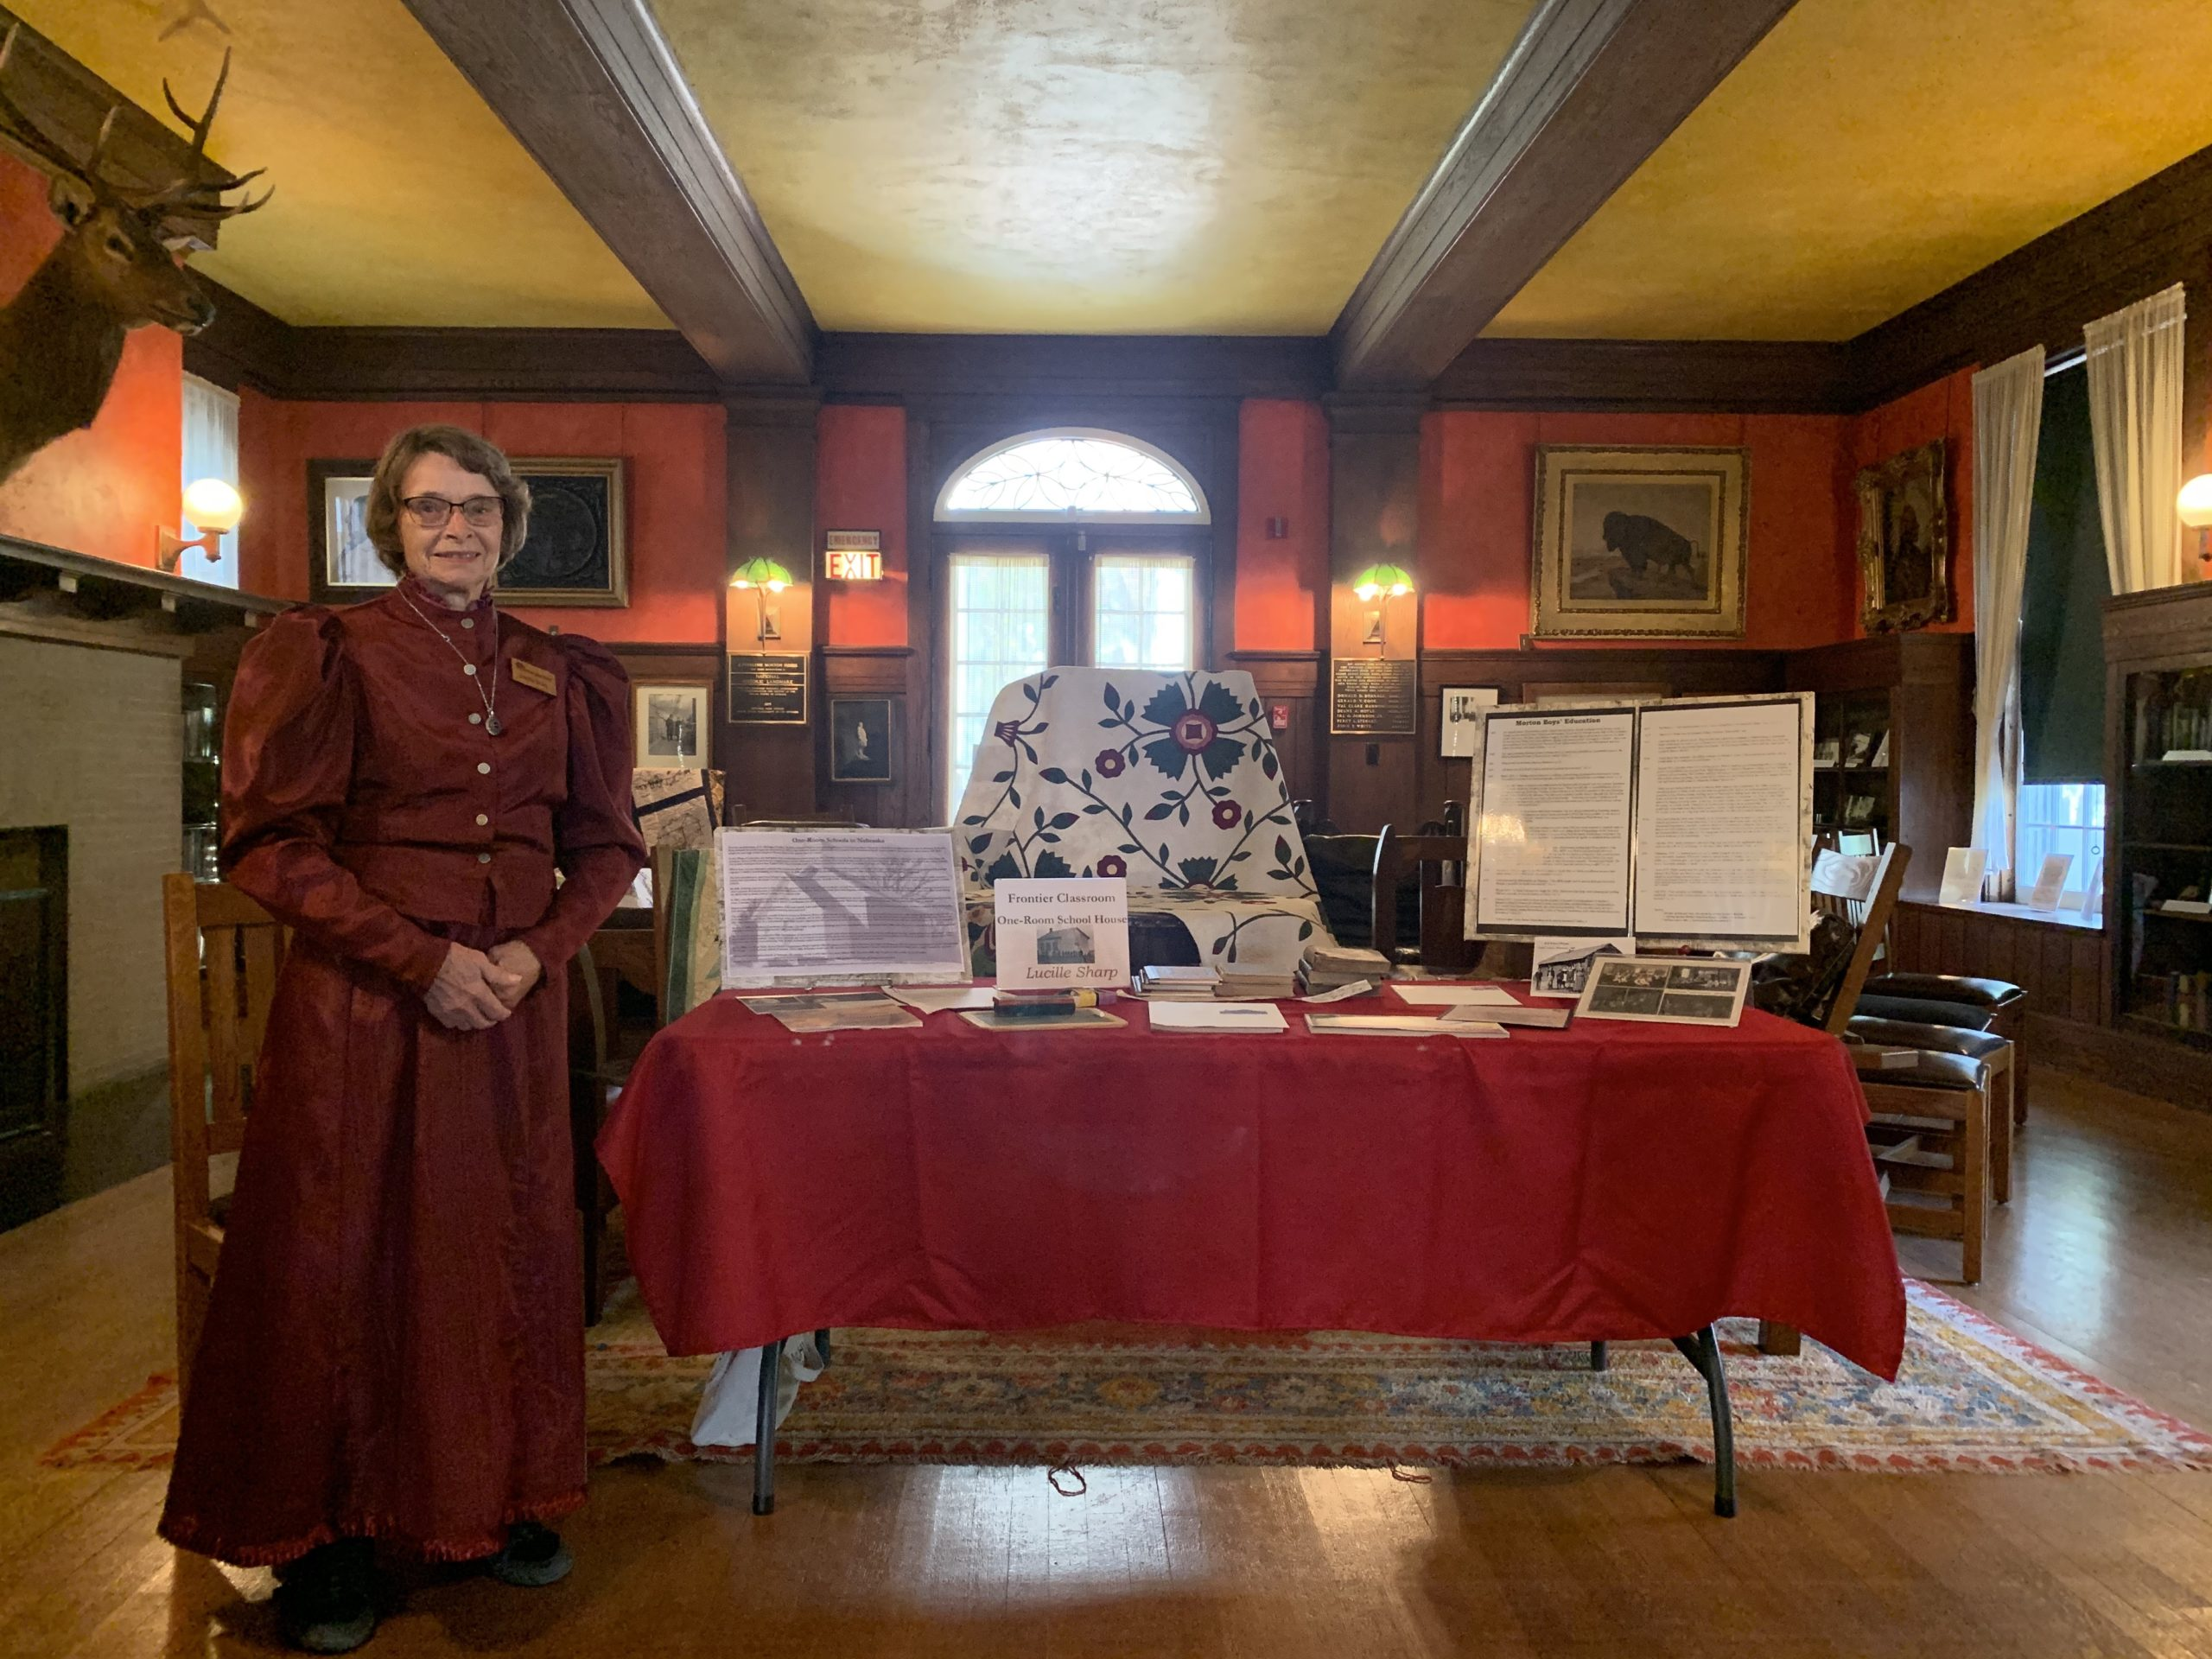 Lucille Sharp poses in a red, pioneer era dress near next to her display on one-room schoolhouses in the Arbor Lodge Mansion